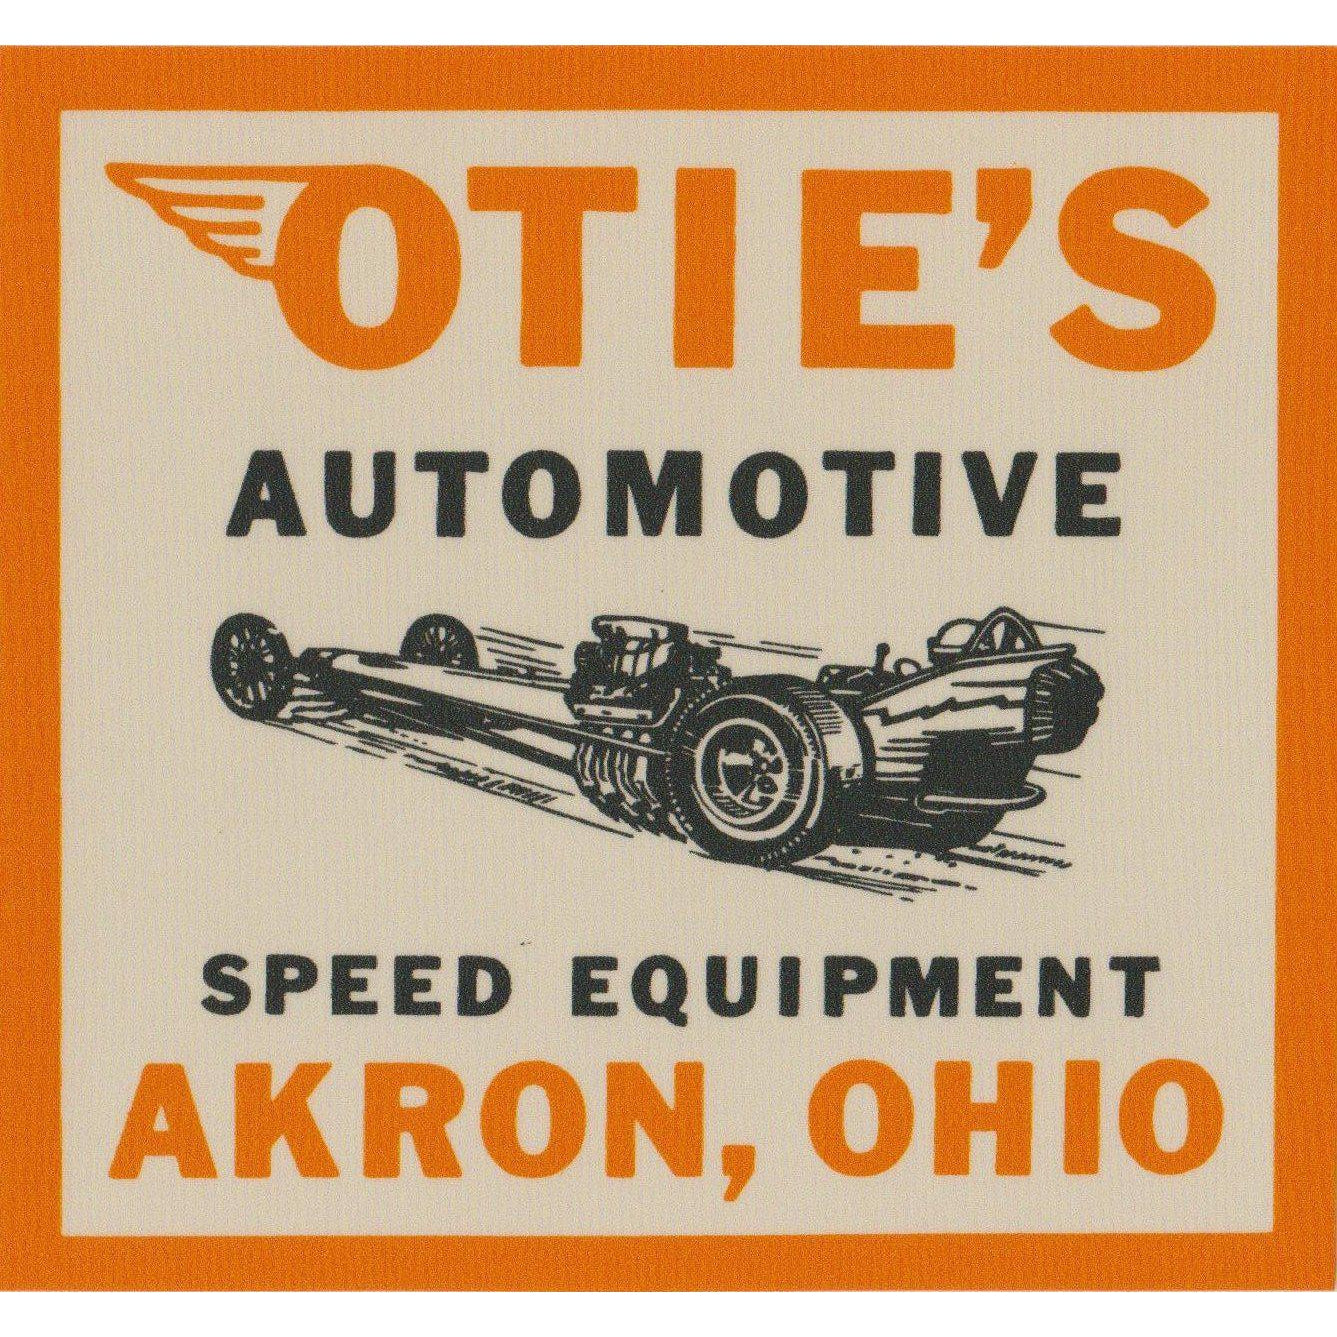 Otie's Automotive Nostalgia Drag Racing 1964 Decal T-shirt